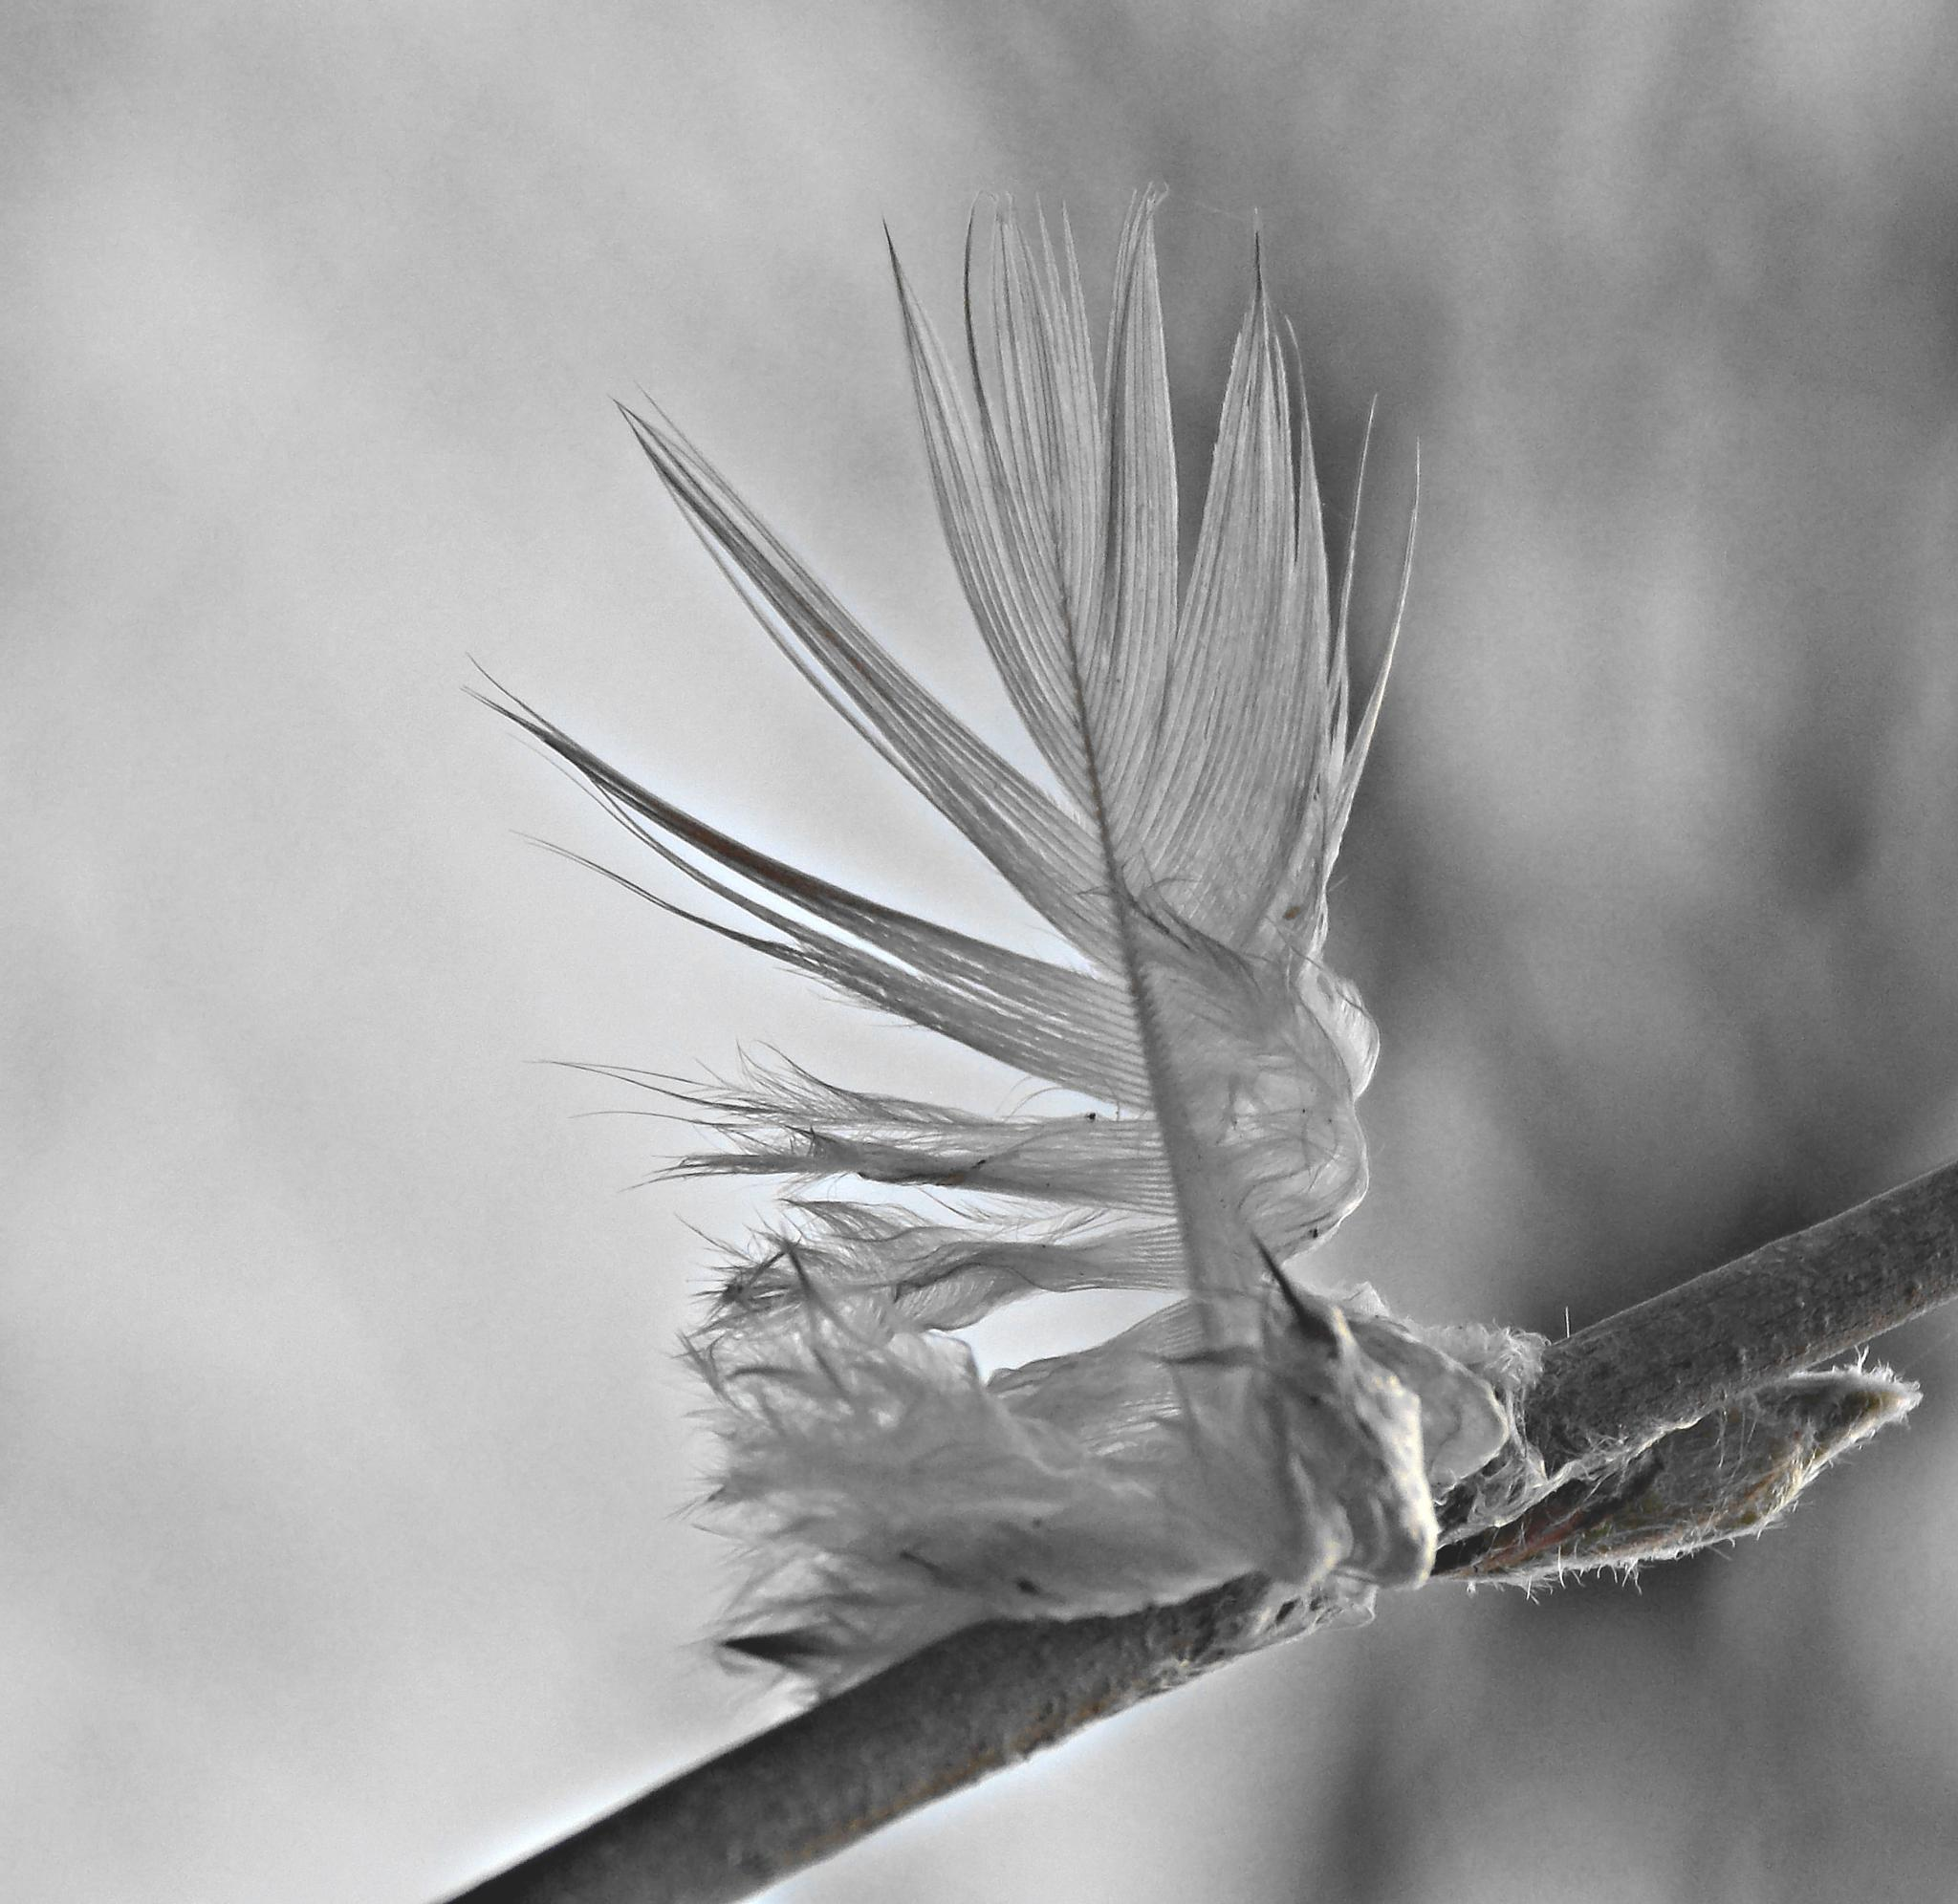 Feather by A. Castellano Rodriguez